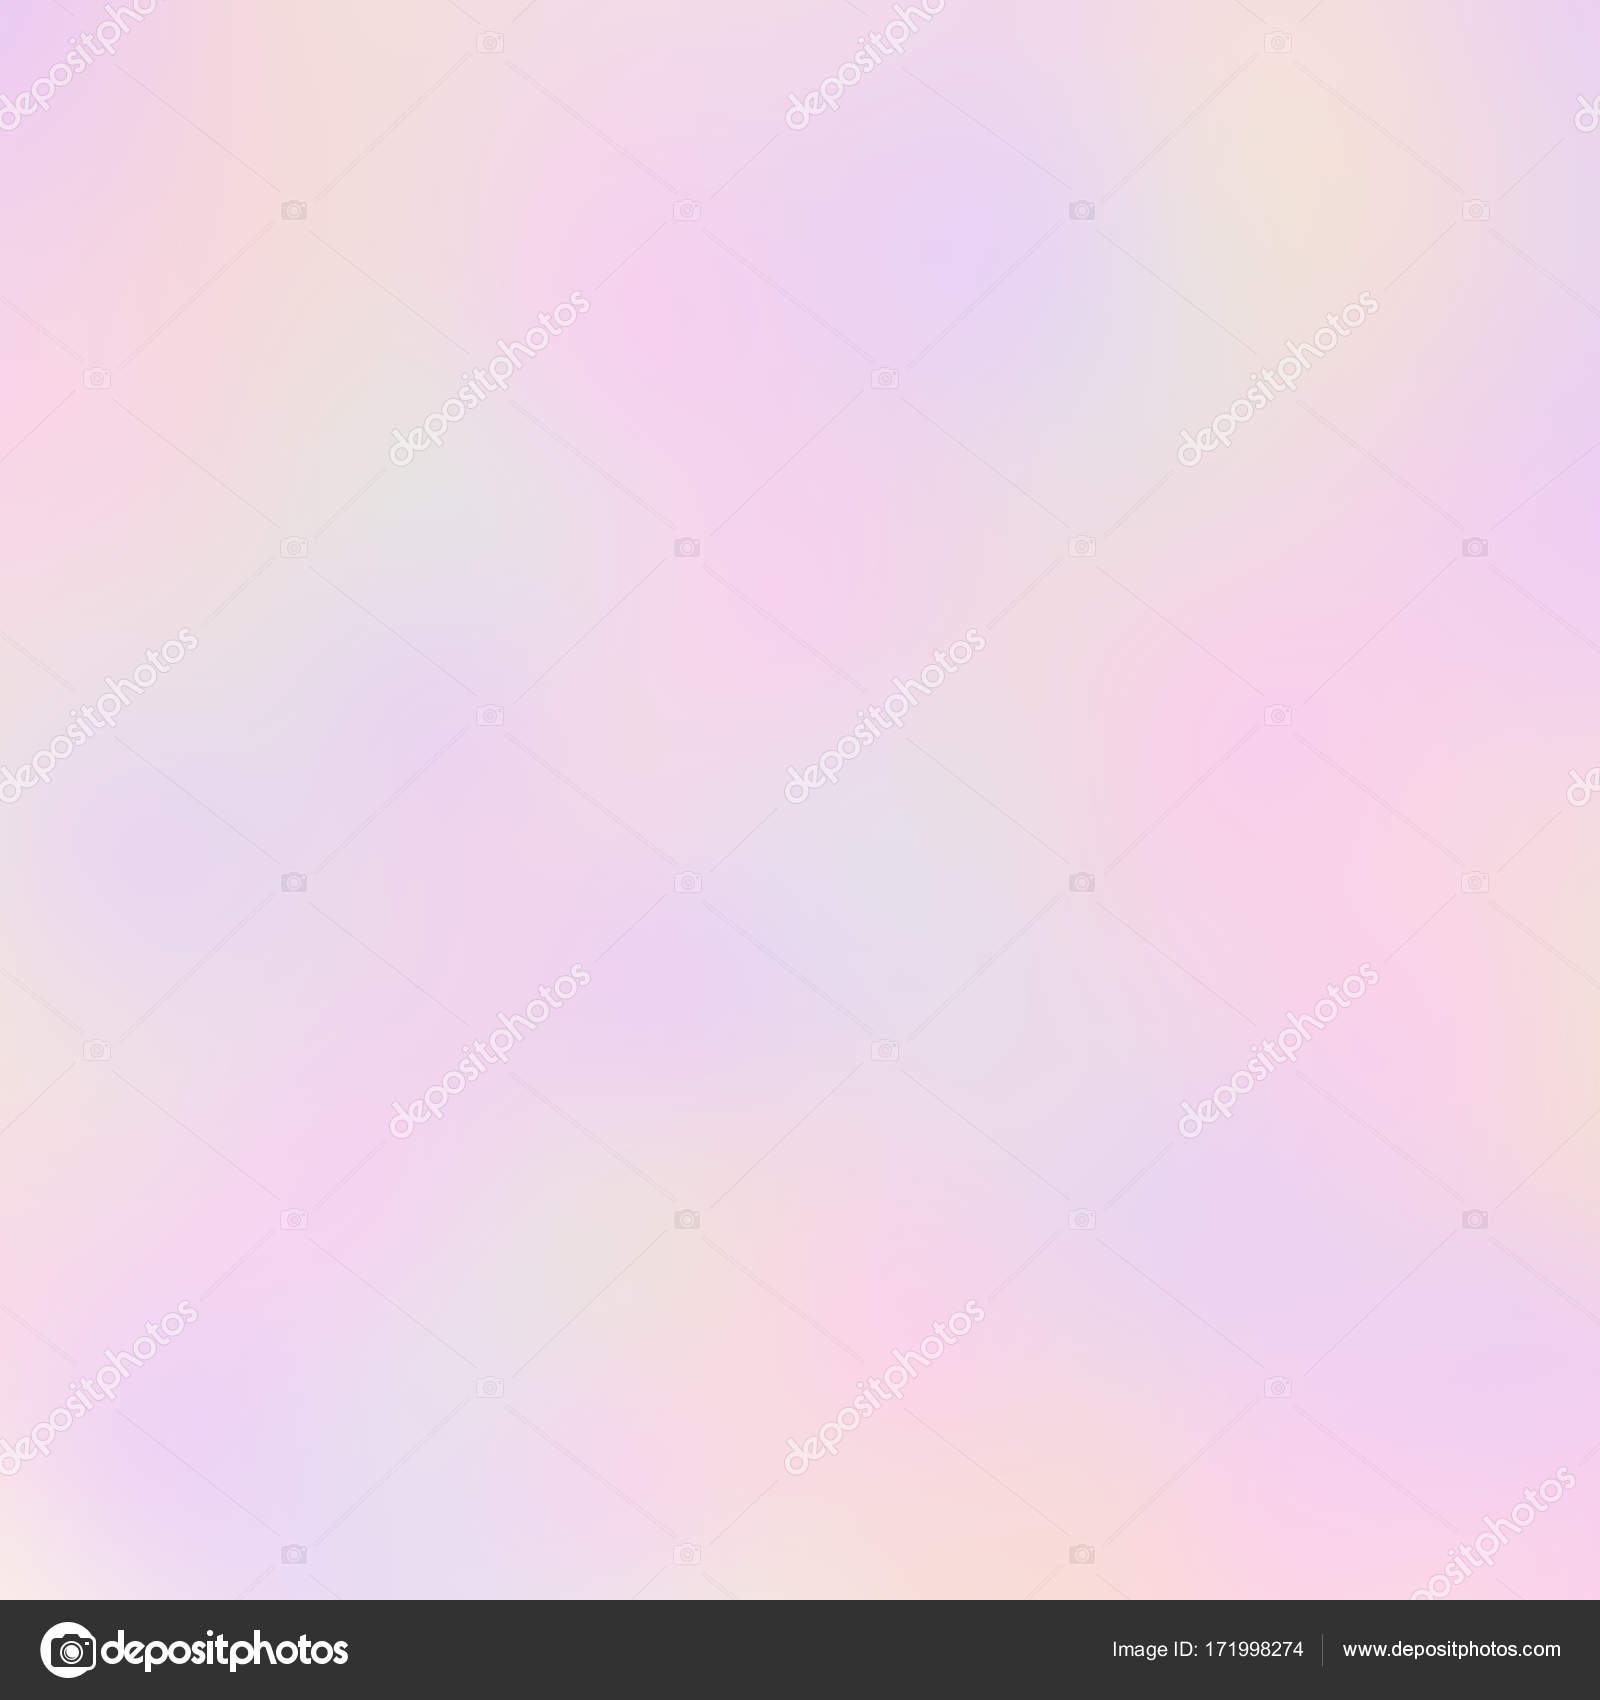 Pictures Cute Pastel Wallpaper Cute Wallpaper With Pastel